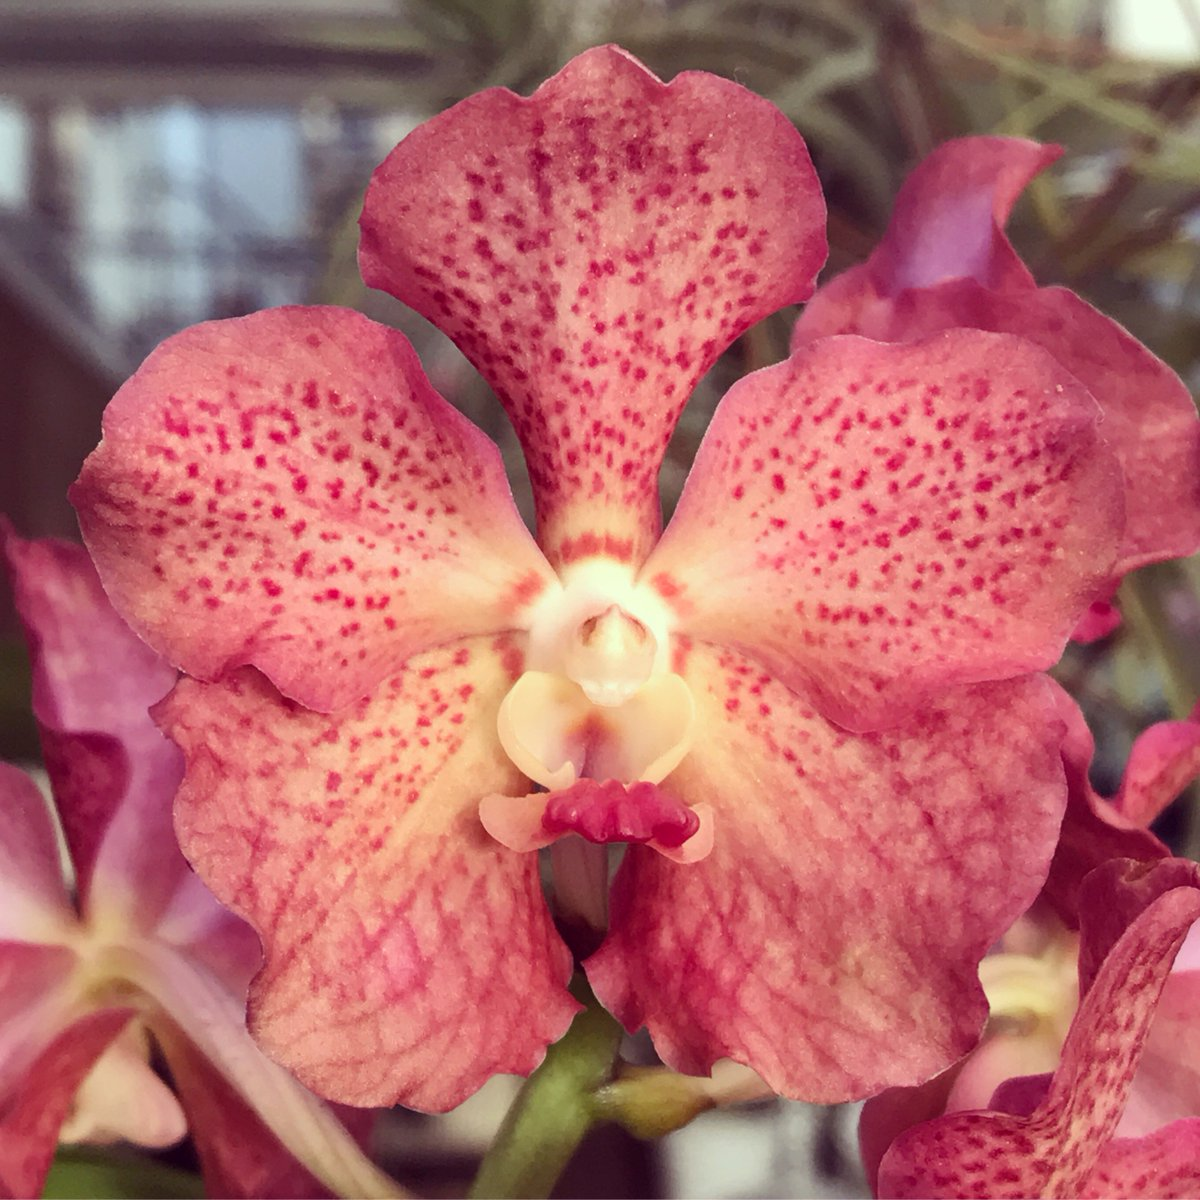 We  the long-lasting blooms of Ascocenda Betty May Steele 'Carmela' #orchid #epiphyte #asheville #apptropicals #flowers<br>http://pic.twitter.com/PmFOAeEPUM